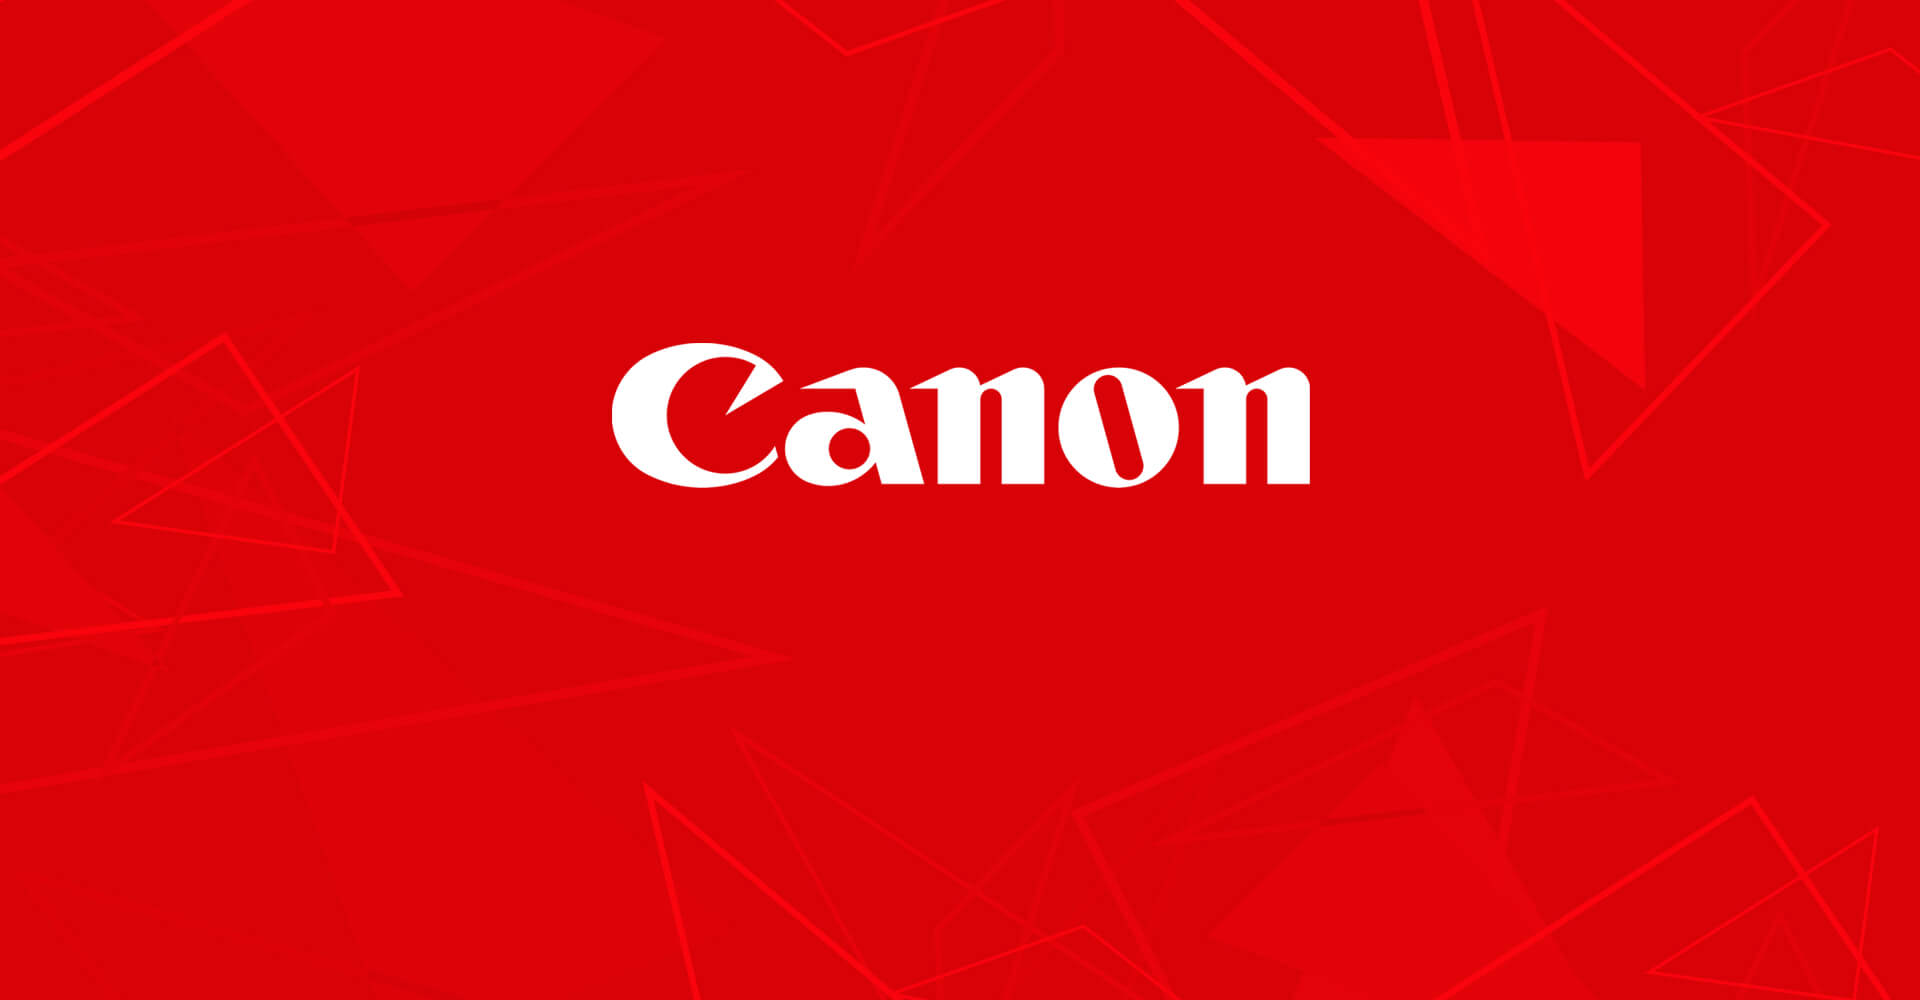 CANON LAUNCHES PRISMAsync V7 PRINT SERVERS FOR NEW imagePRESS C910 SERIES